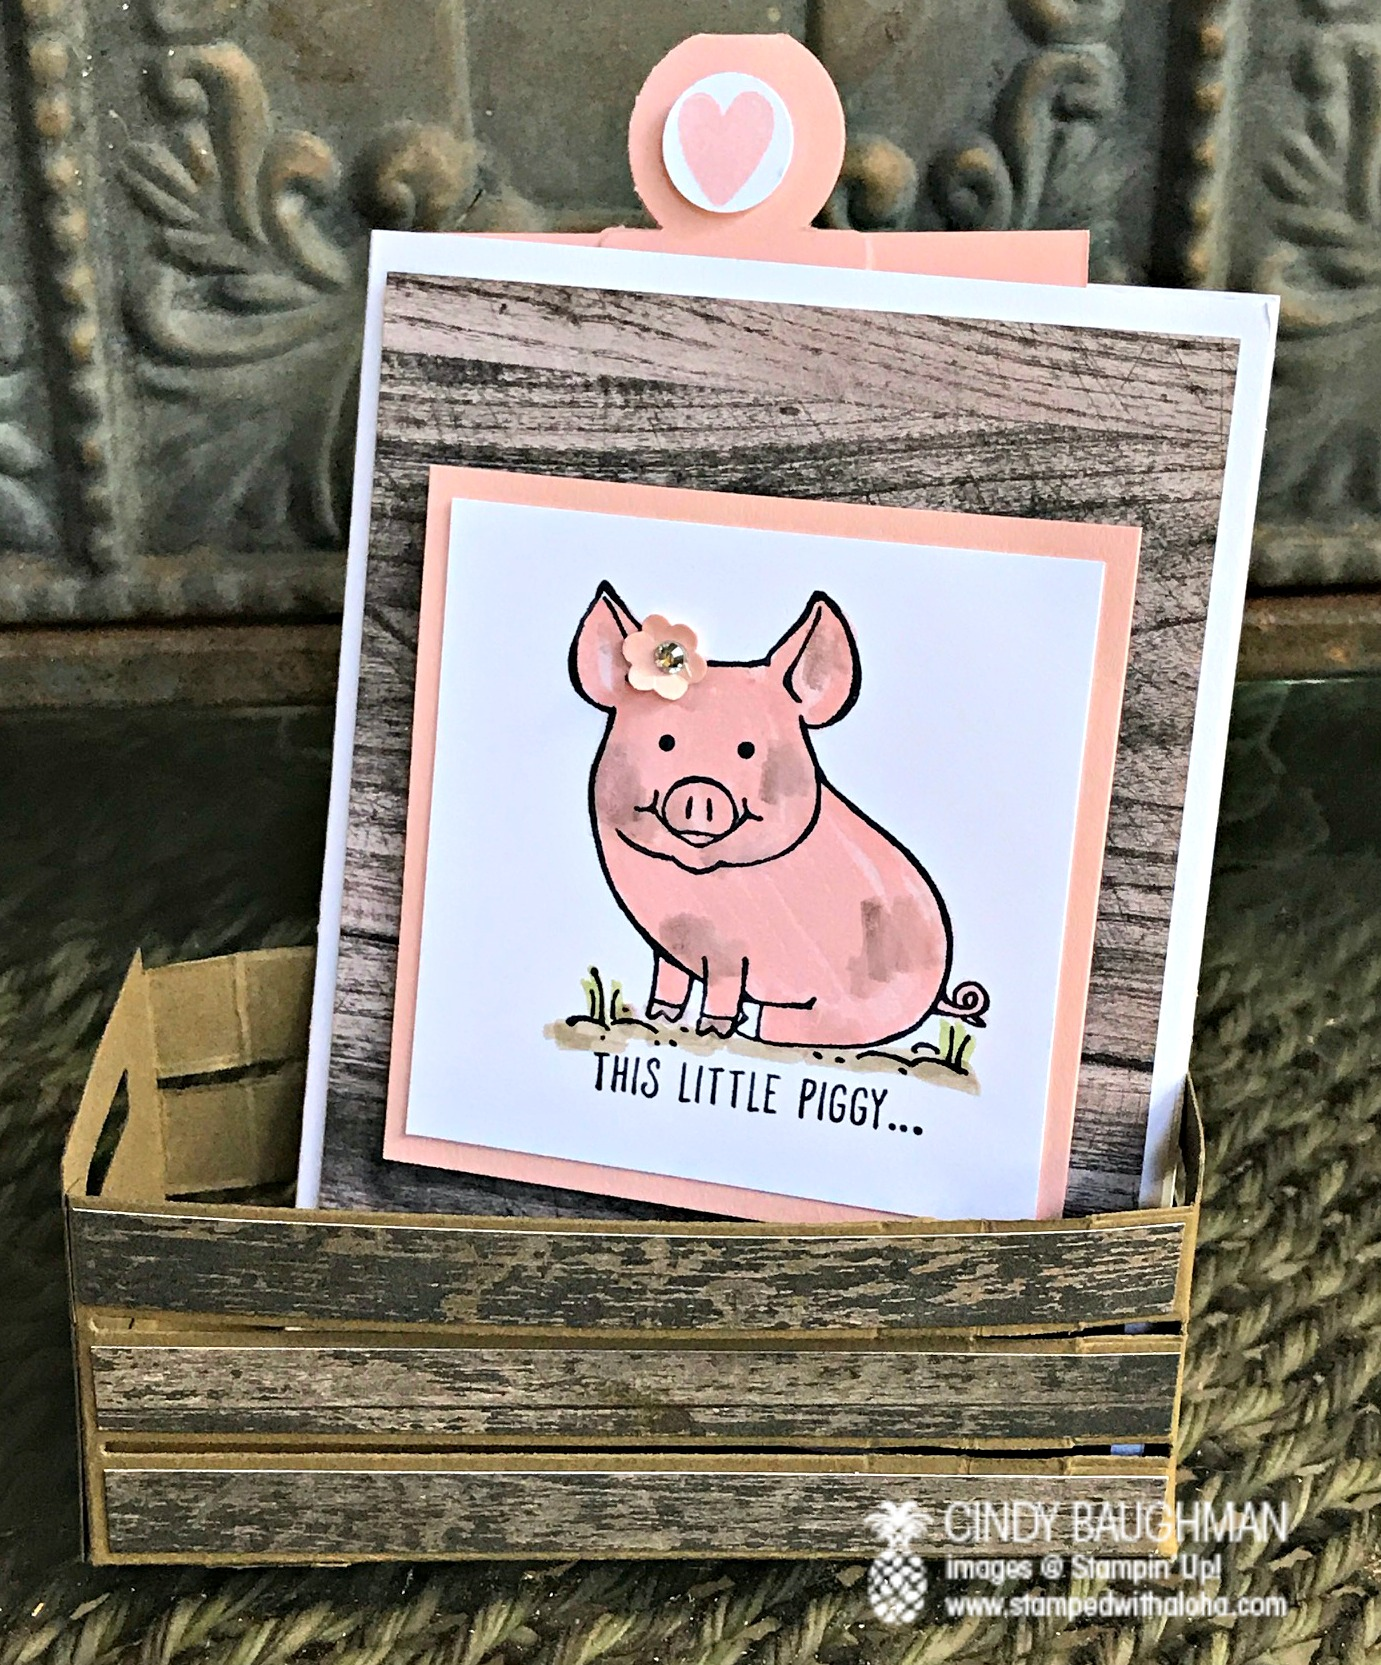 This Little Piggy Pull Card - www.stampedwithaloha.com